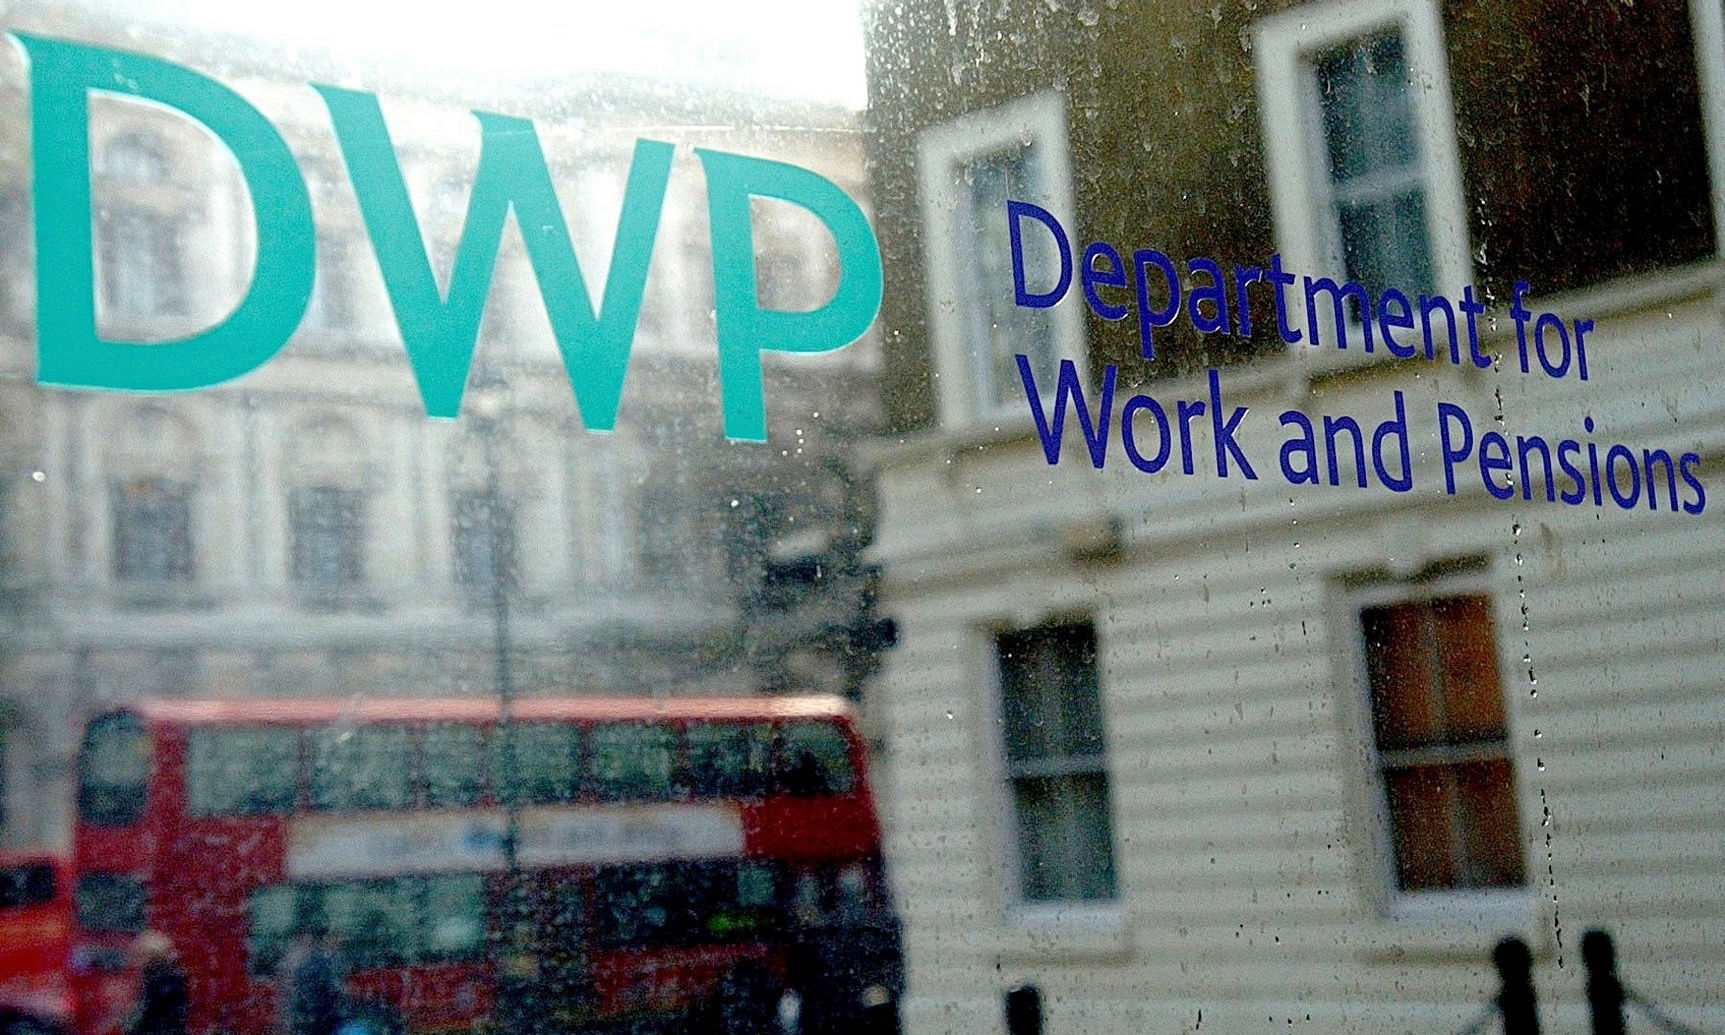 Department of Work and Pensions image